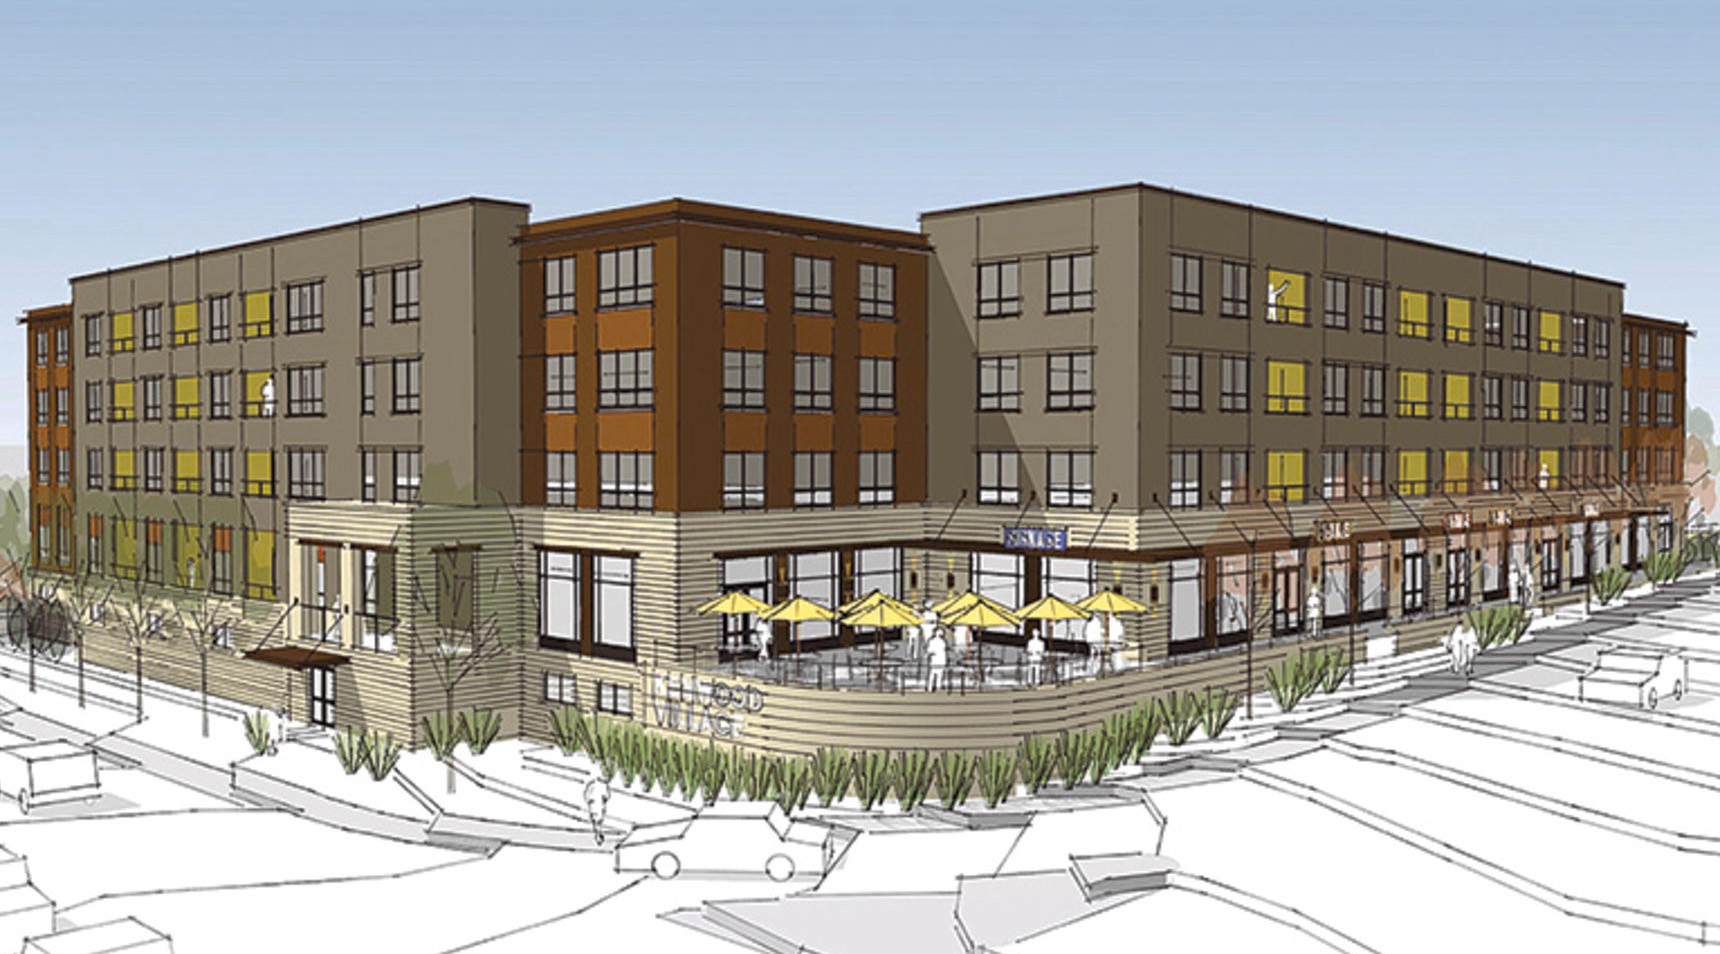 KENWOOD VILLAGE                                                                             COMMERCIAL / RESIDENTIAL   ARROWHEAD ROAD   DULUTH                                               PLANNED COMPLETION: SUMMER 2017